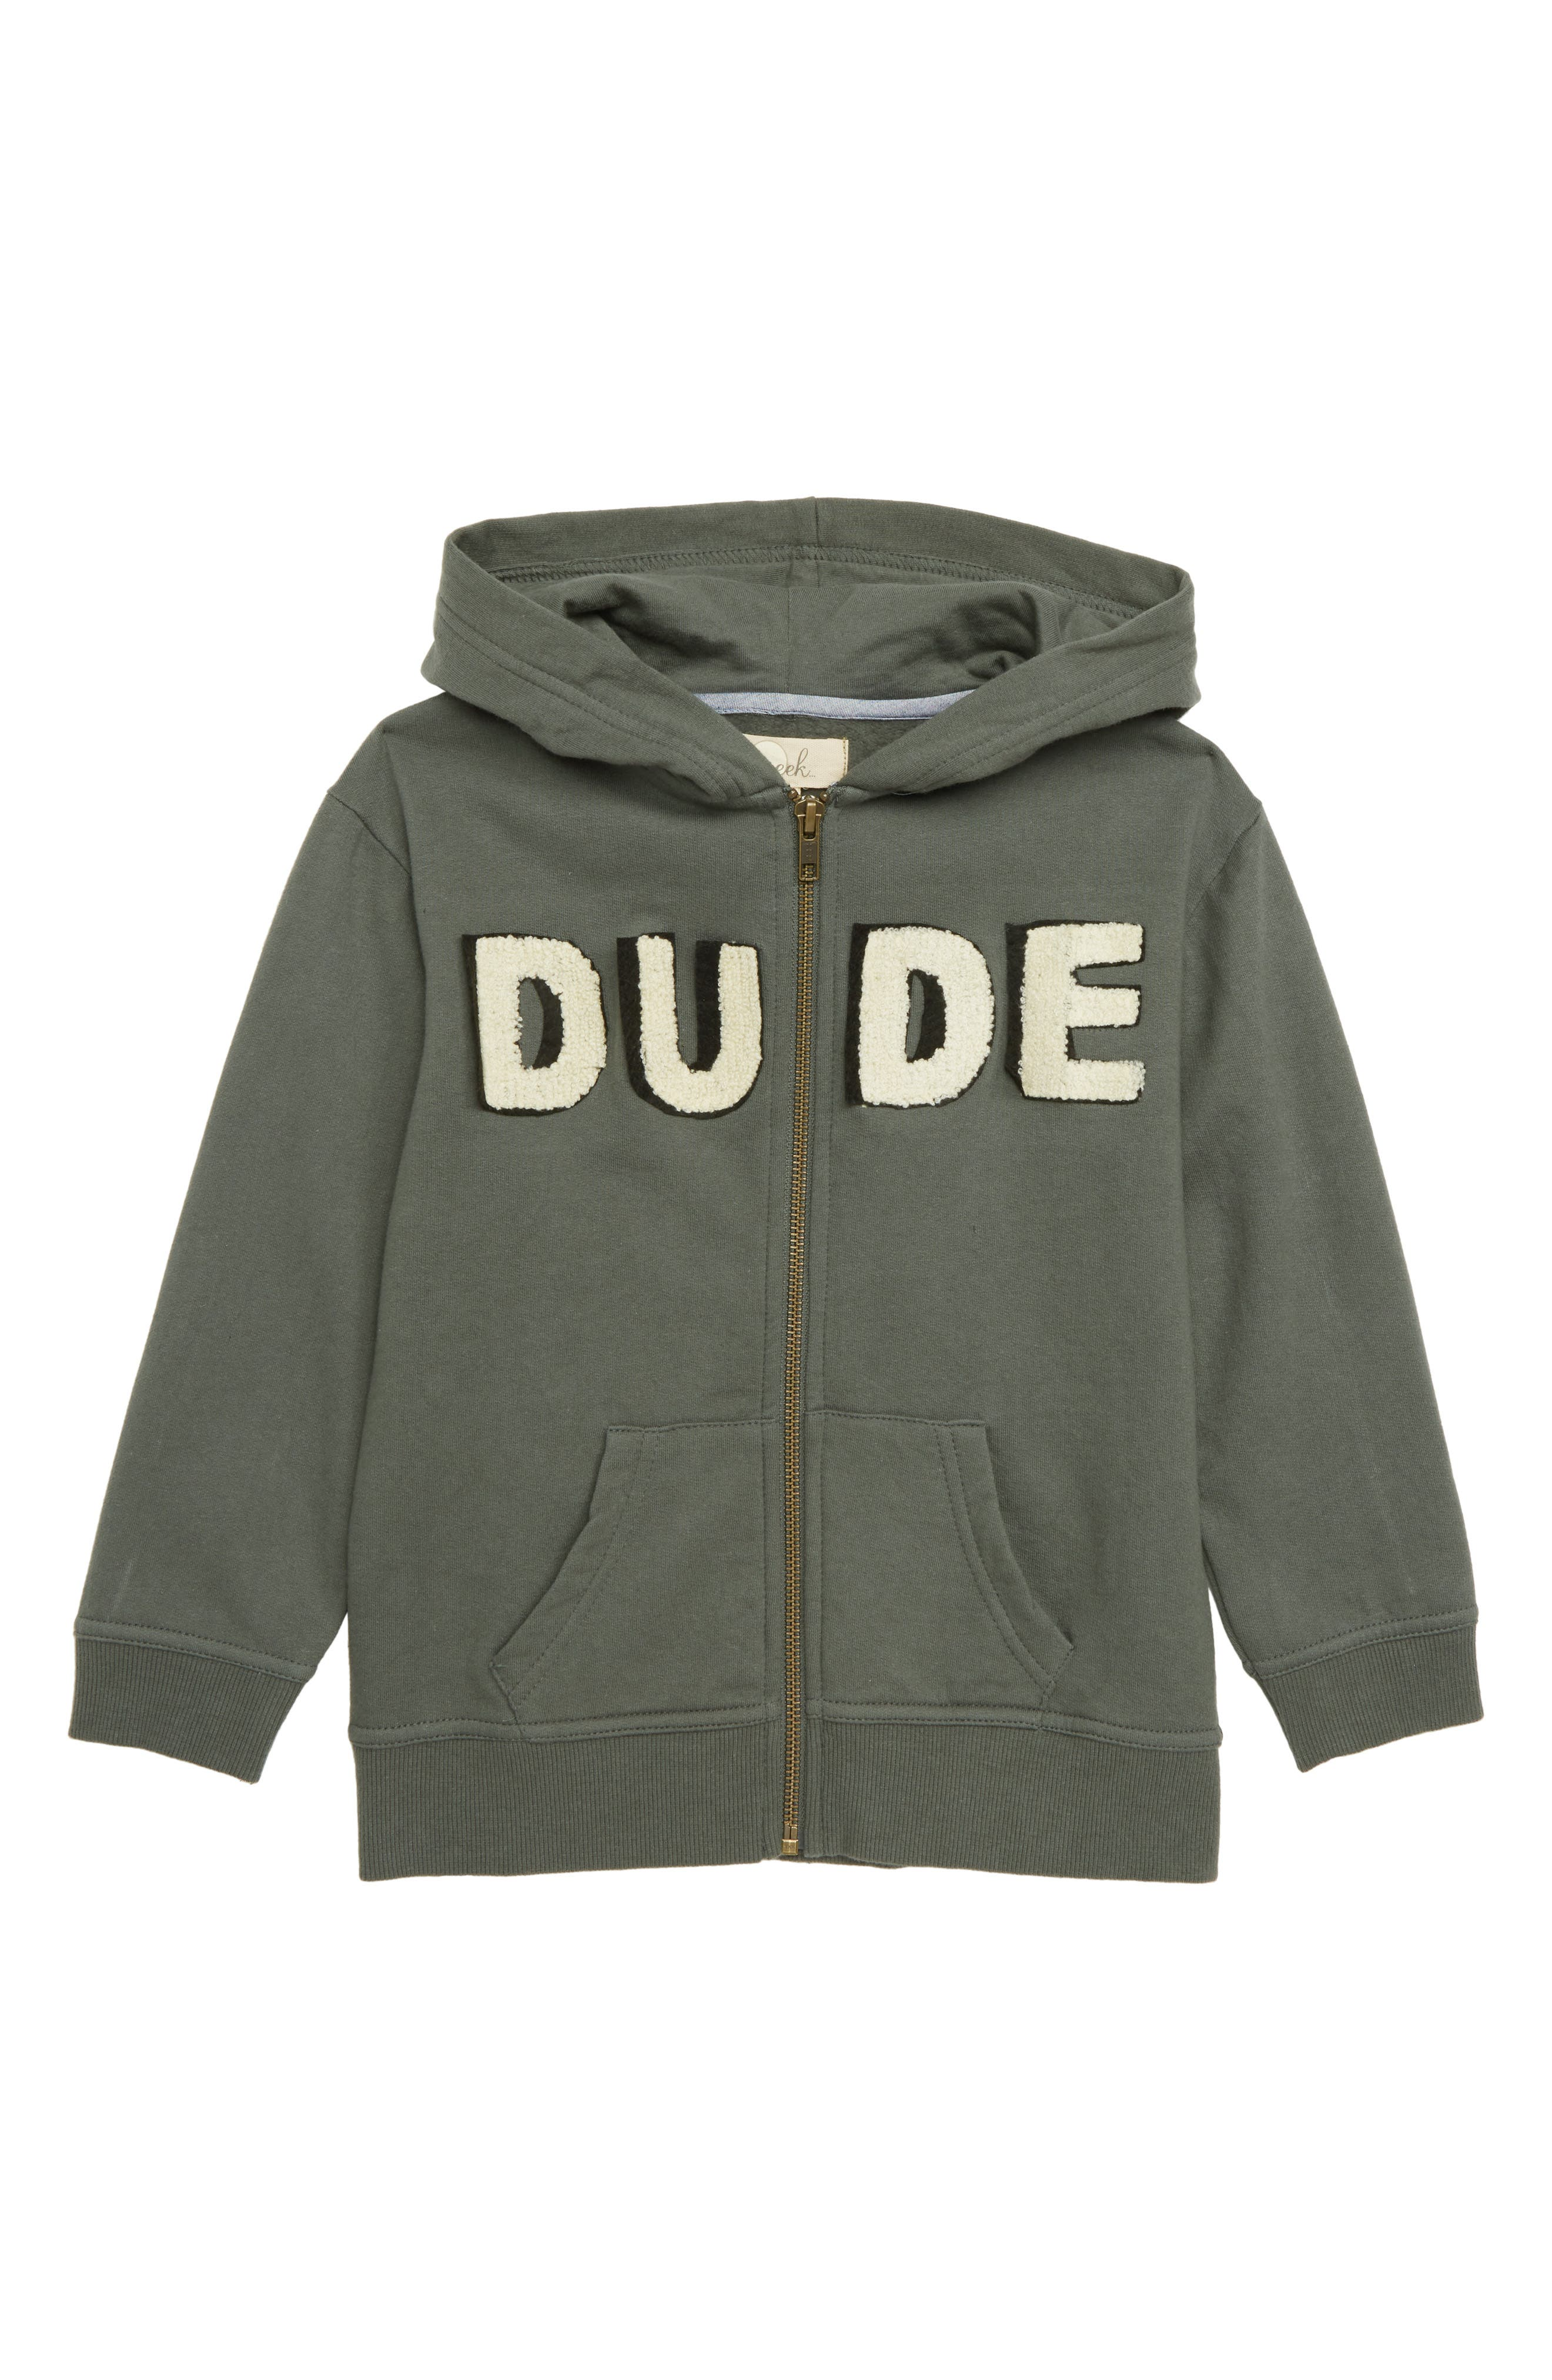 Dude Zip Hoodie,                             Main thumbnail 1, color,                             OLIVE GREEN